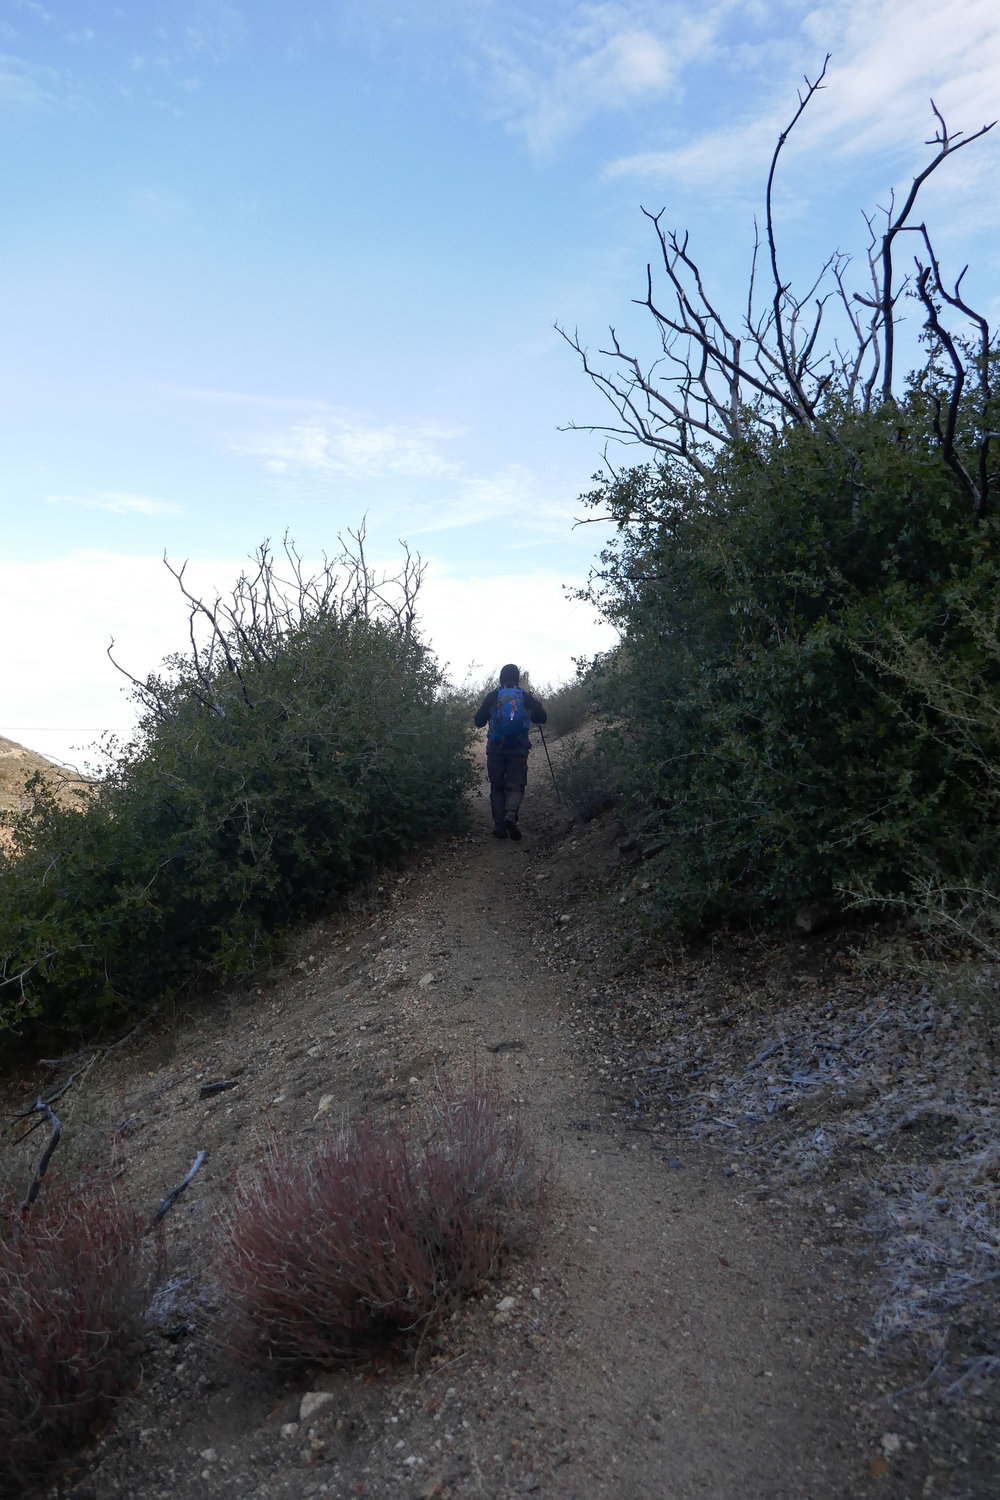 Heading up to the Pacifico Mountain campground on the Pacific Crest Trail.